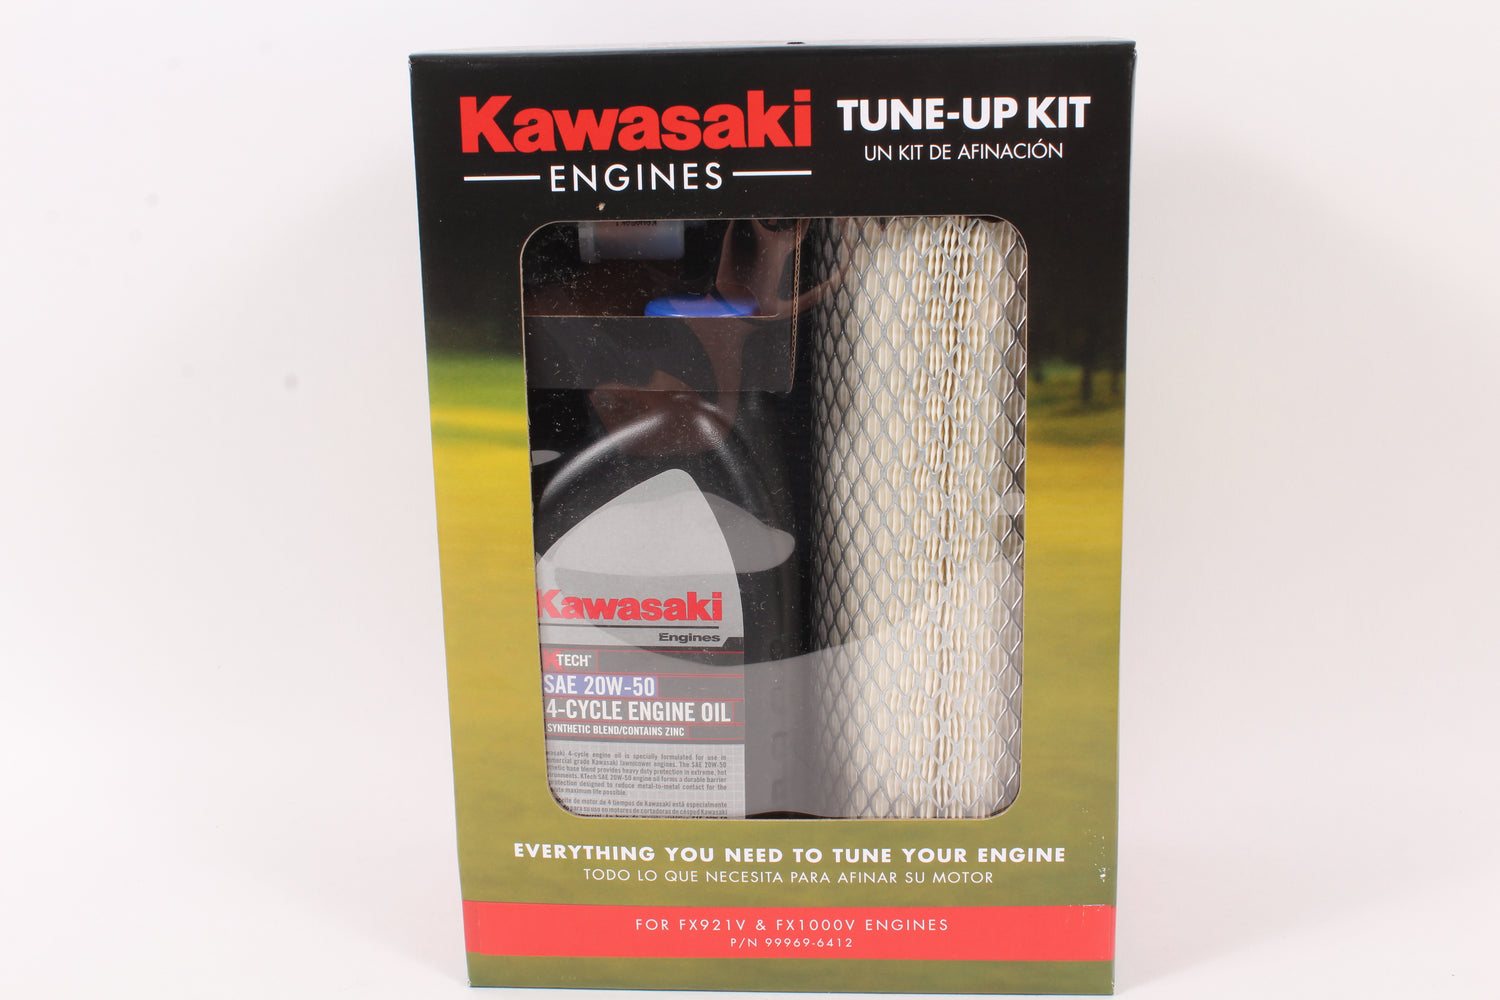 Genuine Kawasaki 99969-6412 Tune Up Kit For FX921V FX1000V 20W50